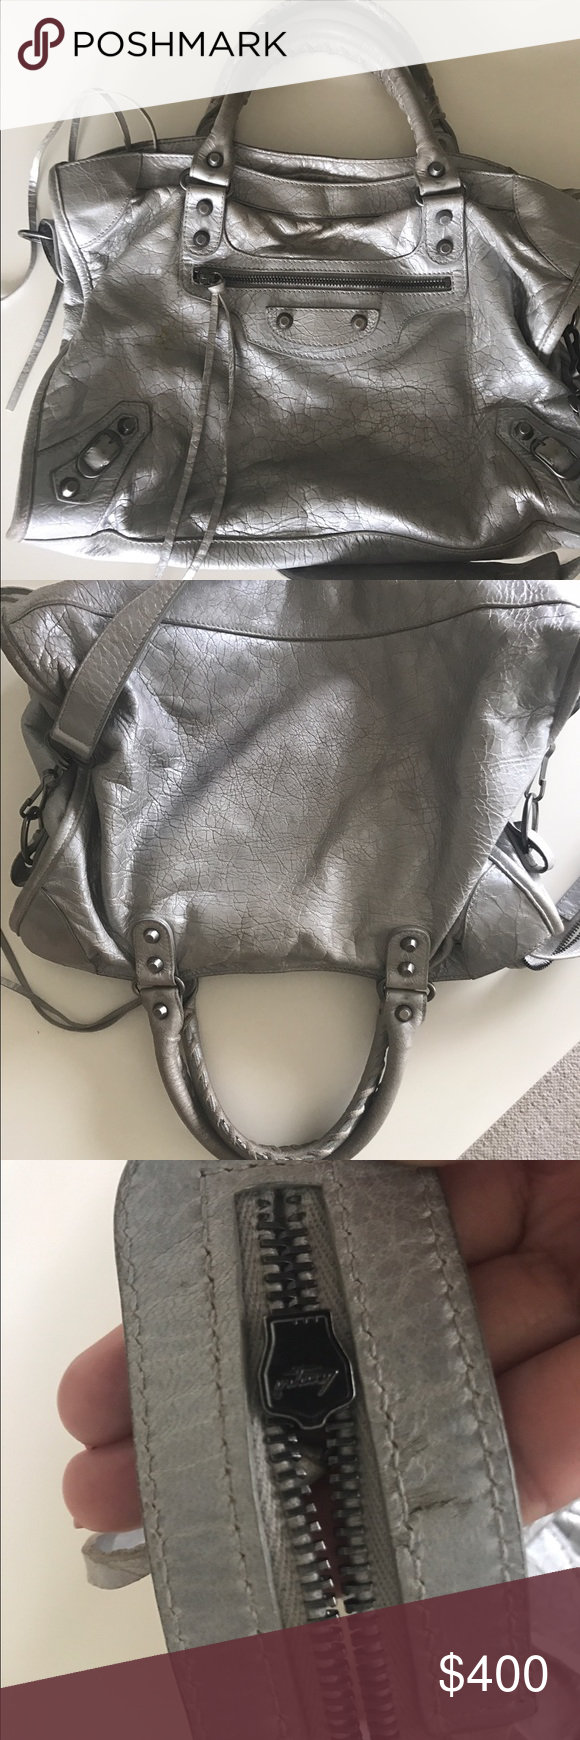 Authentic Balenciaga Silver Metallic Moto City Bag My Posh Picks Mini Edge Ghw Used I Mean You Can See